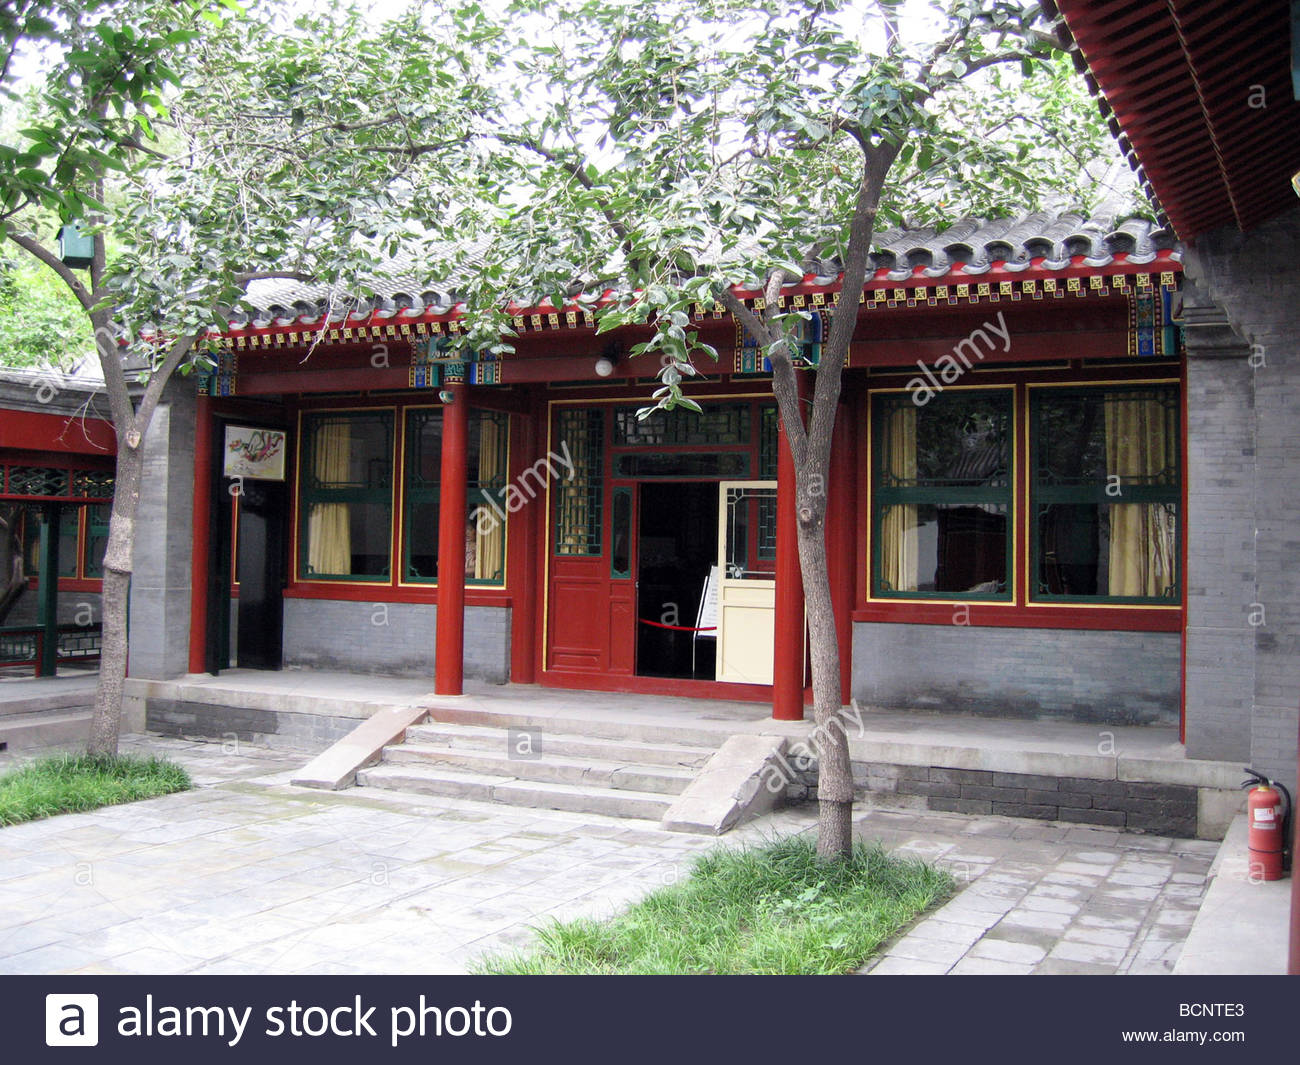 Altar to the God of the Land & the God of Grain Běijīng, Courtyard of Mei Lanfang Memorial Museum, Meilanfang Residence in ...